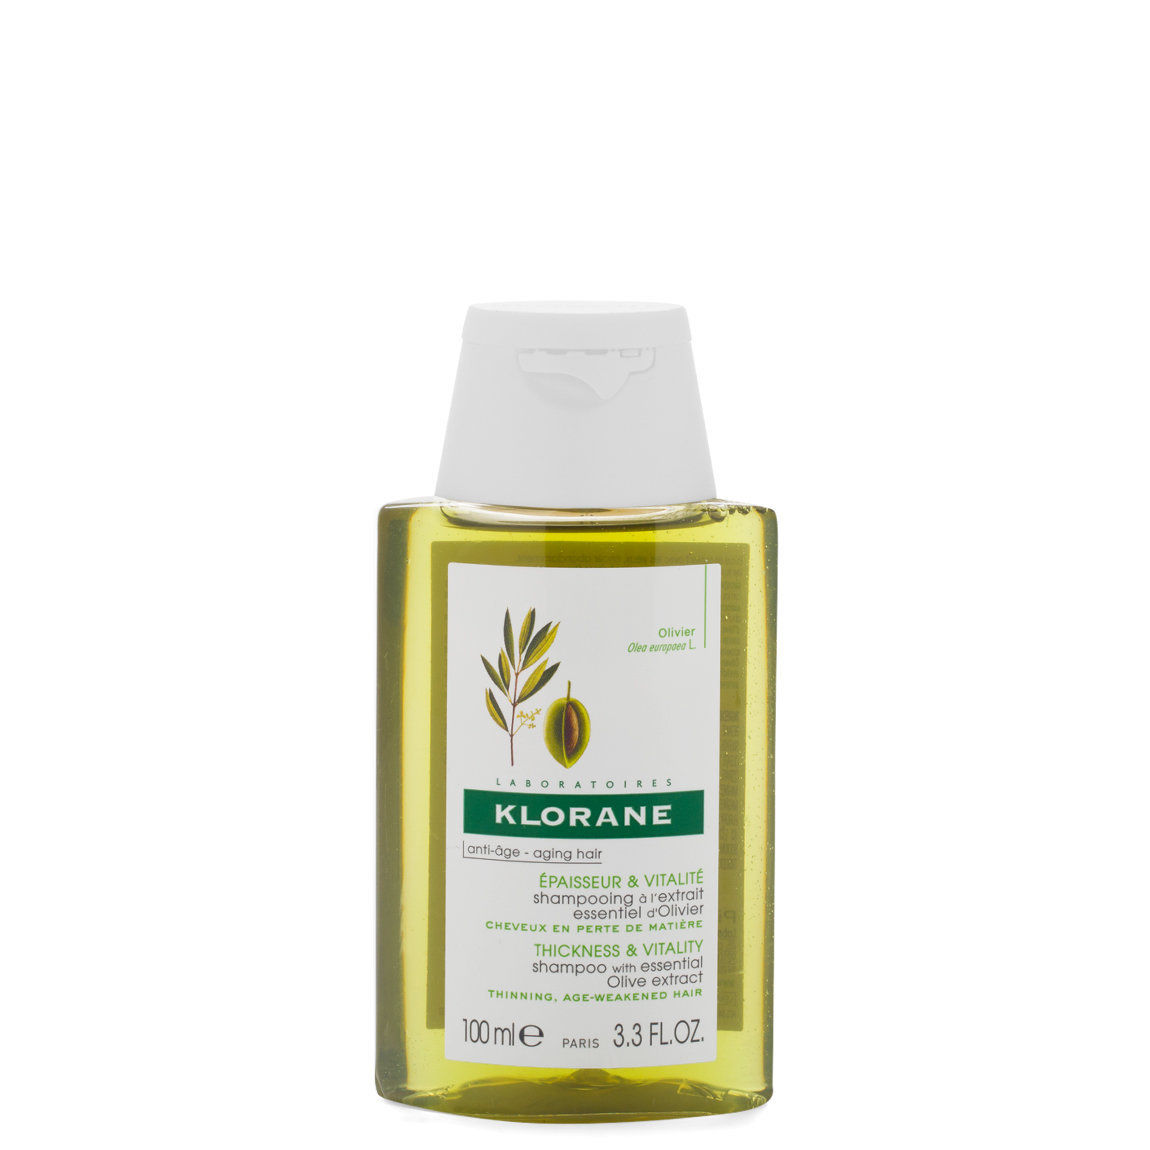 Klorane Shampoo with Essential Olive Extract 3.3 oz alternative view 1 - product swatch.